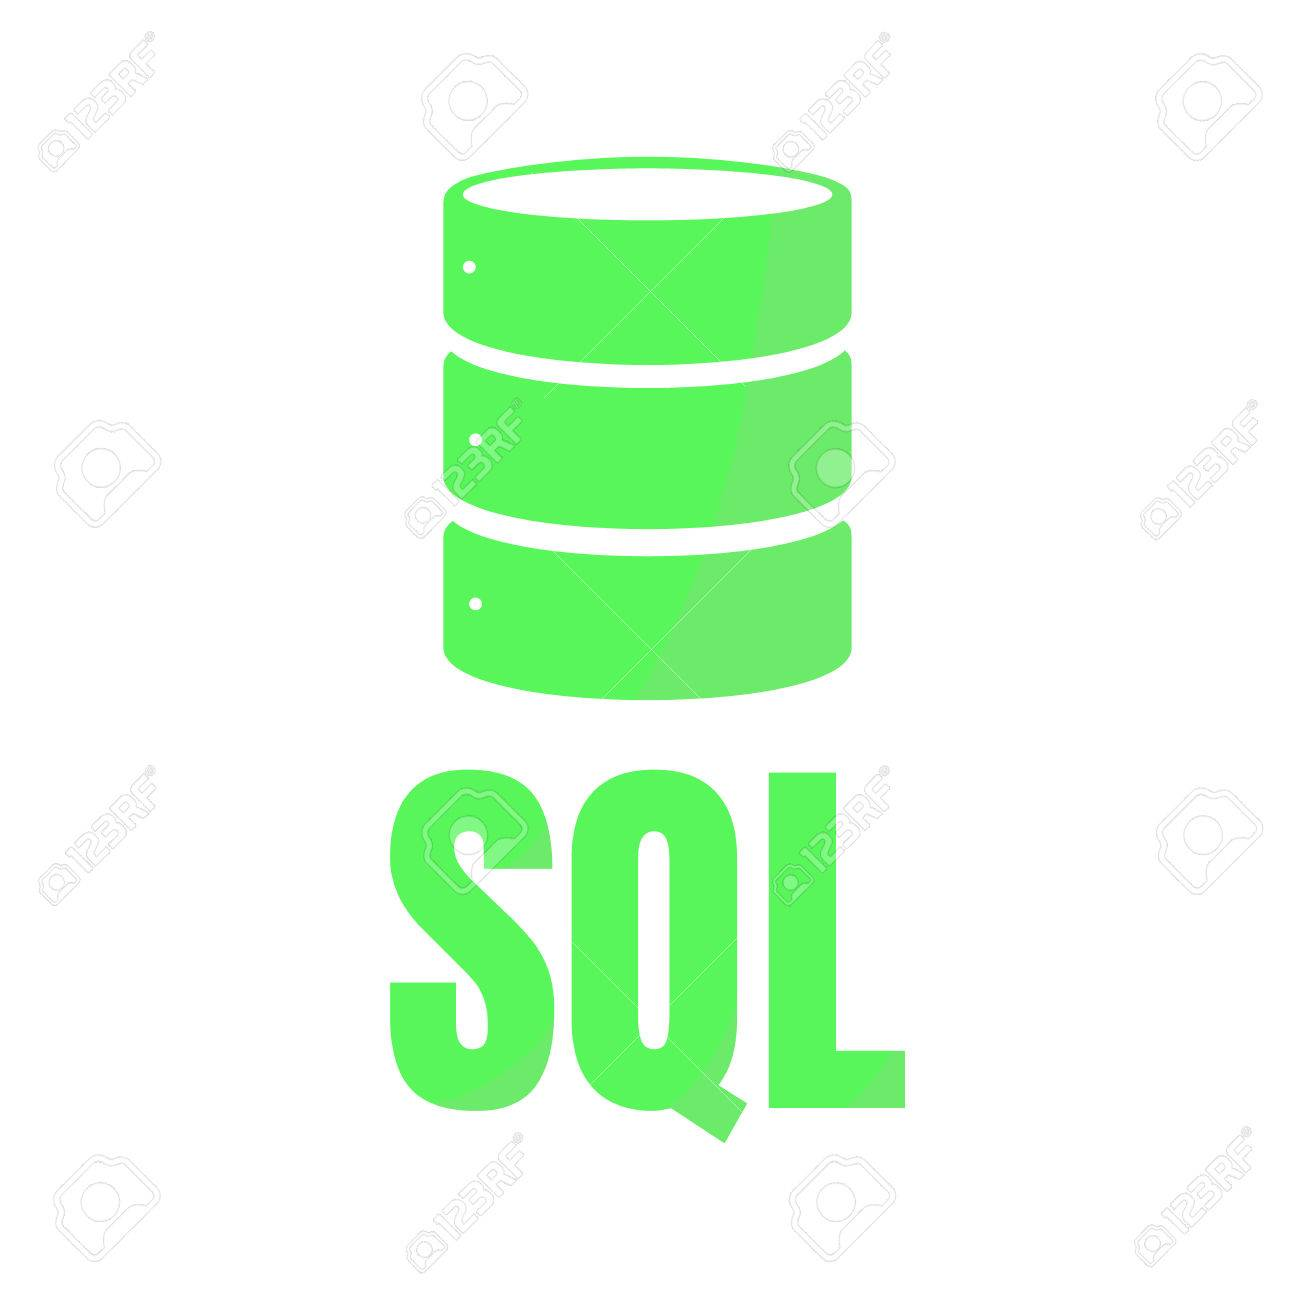 sql database icon logo design ui or ux app green inscription rh 123rf com database logo inspiration database logon failed. crystal reports c#